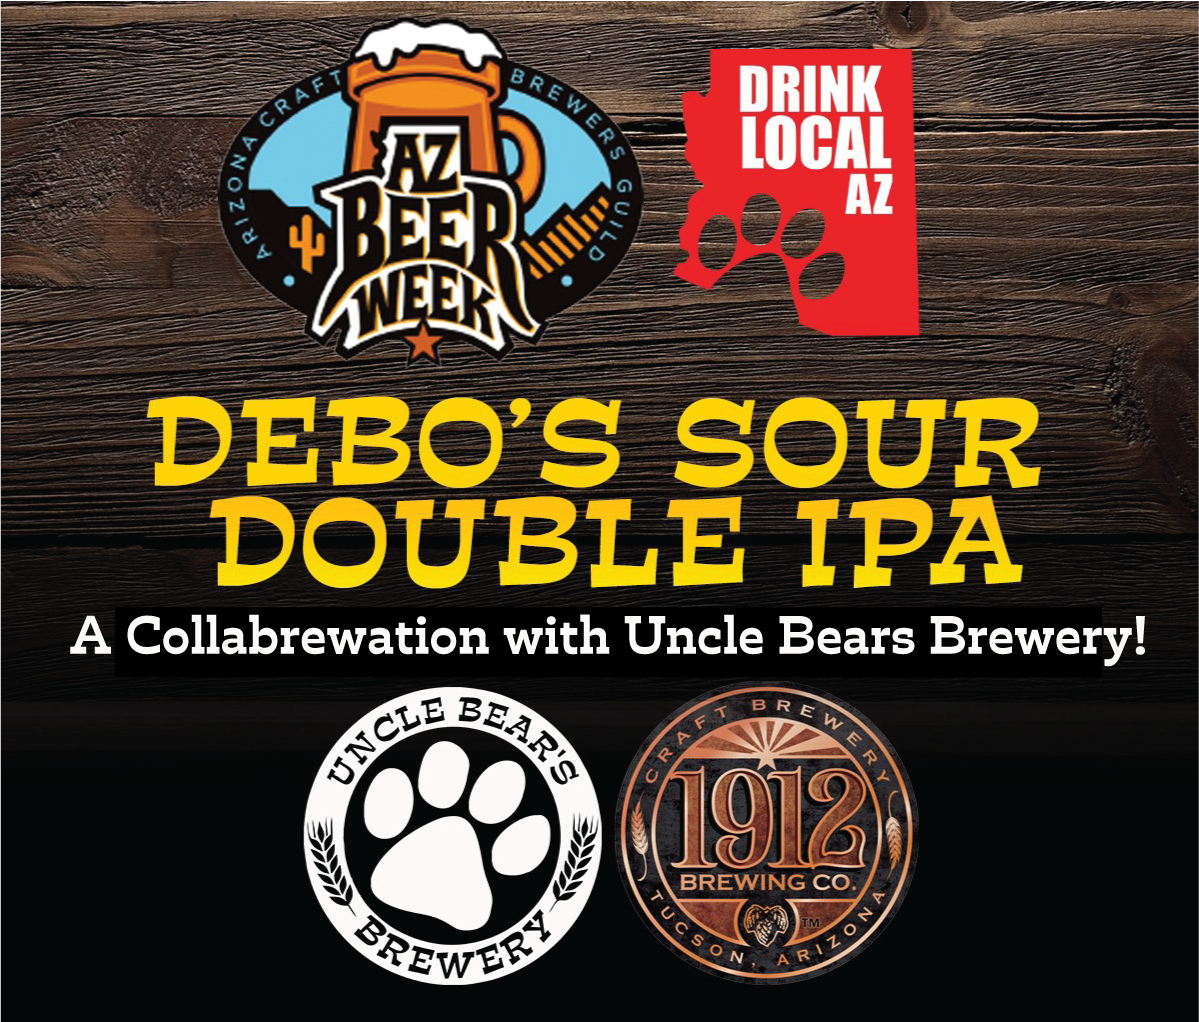 1912 Brewing x Uncle Bears Brewery Collab Release